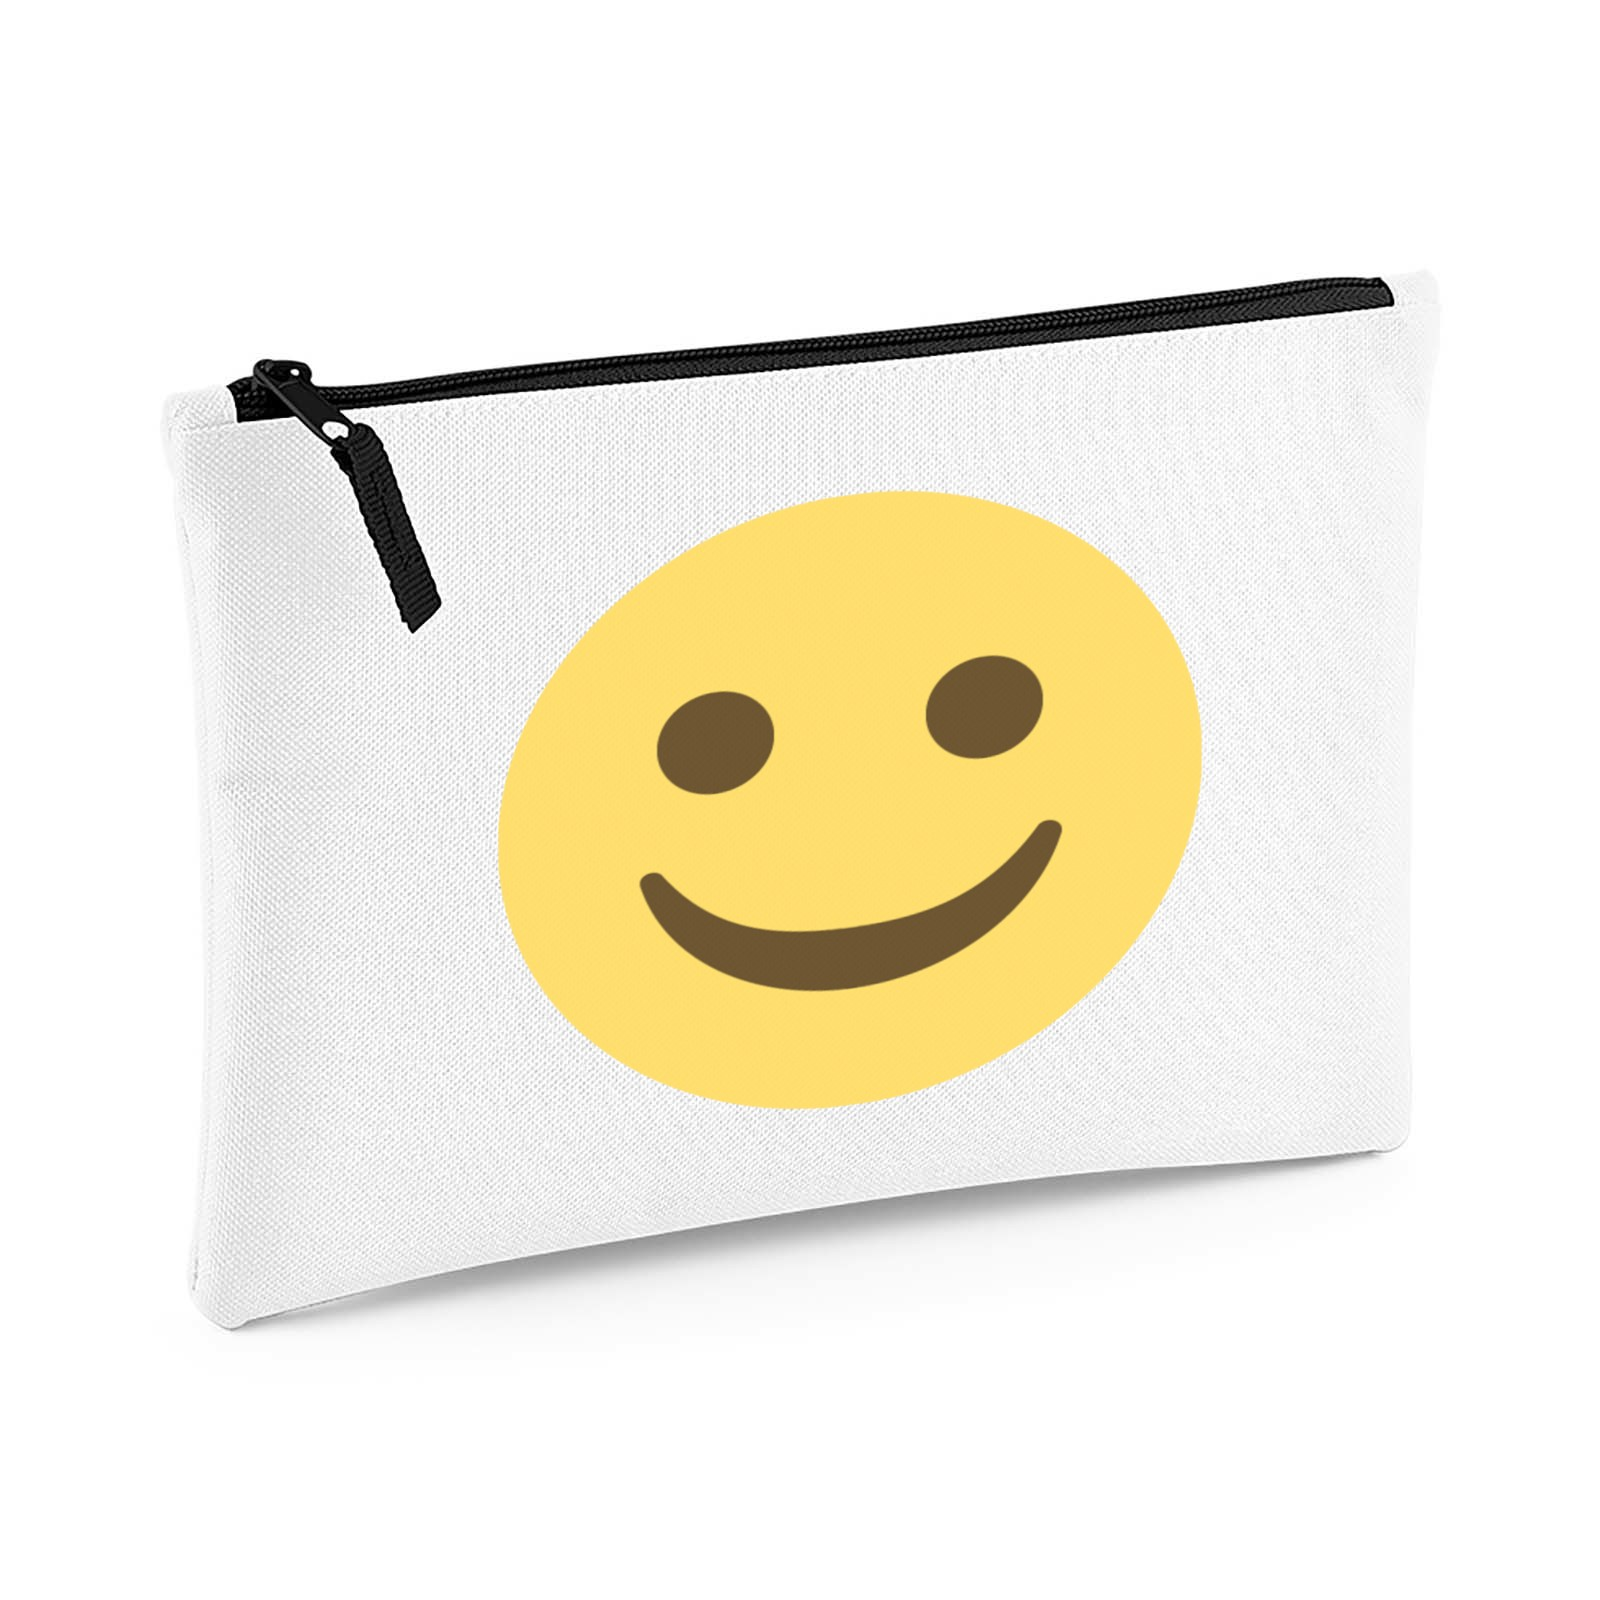 f8c7f24d62a5 Emoji White Smiling Face Large Flat Pencil Case. Available in many ...